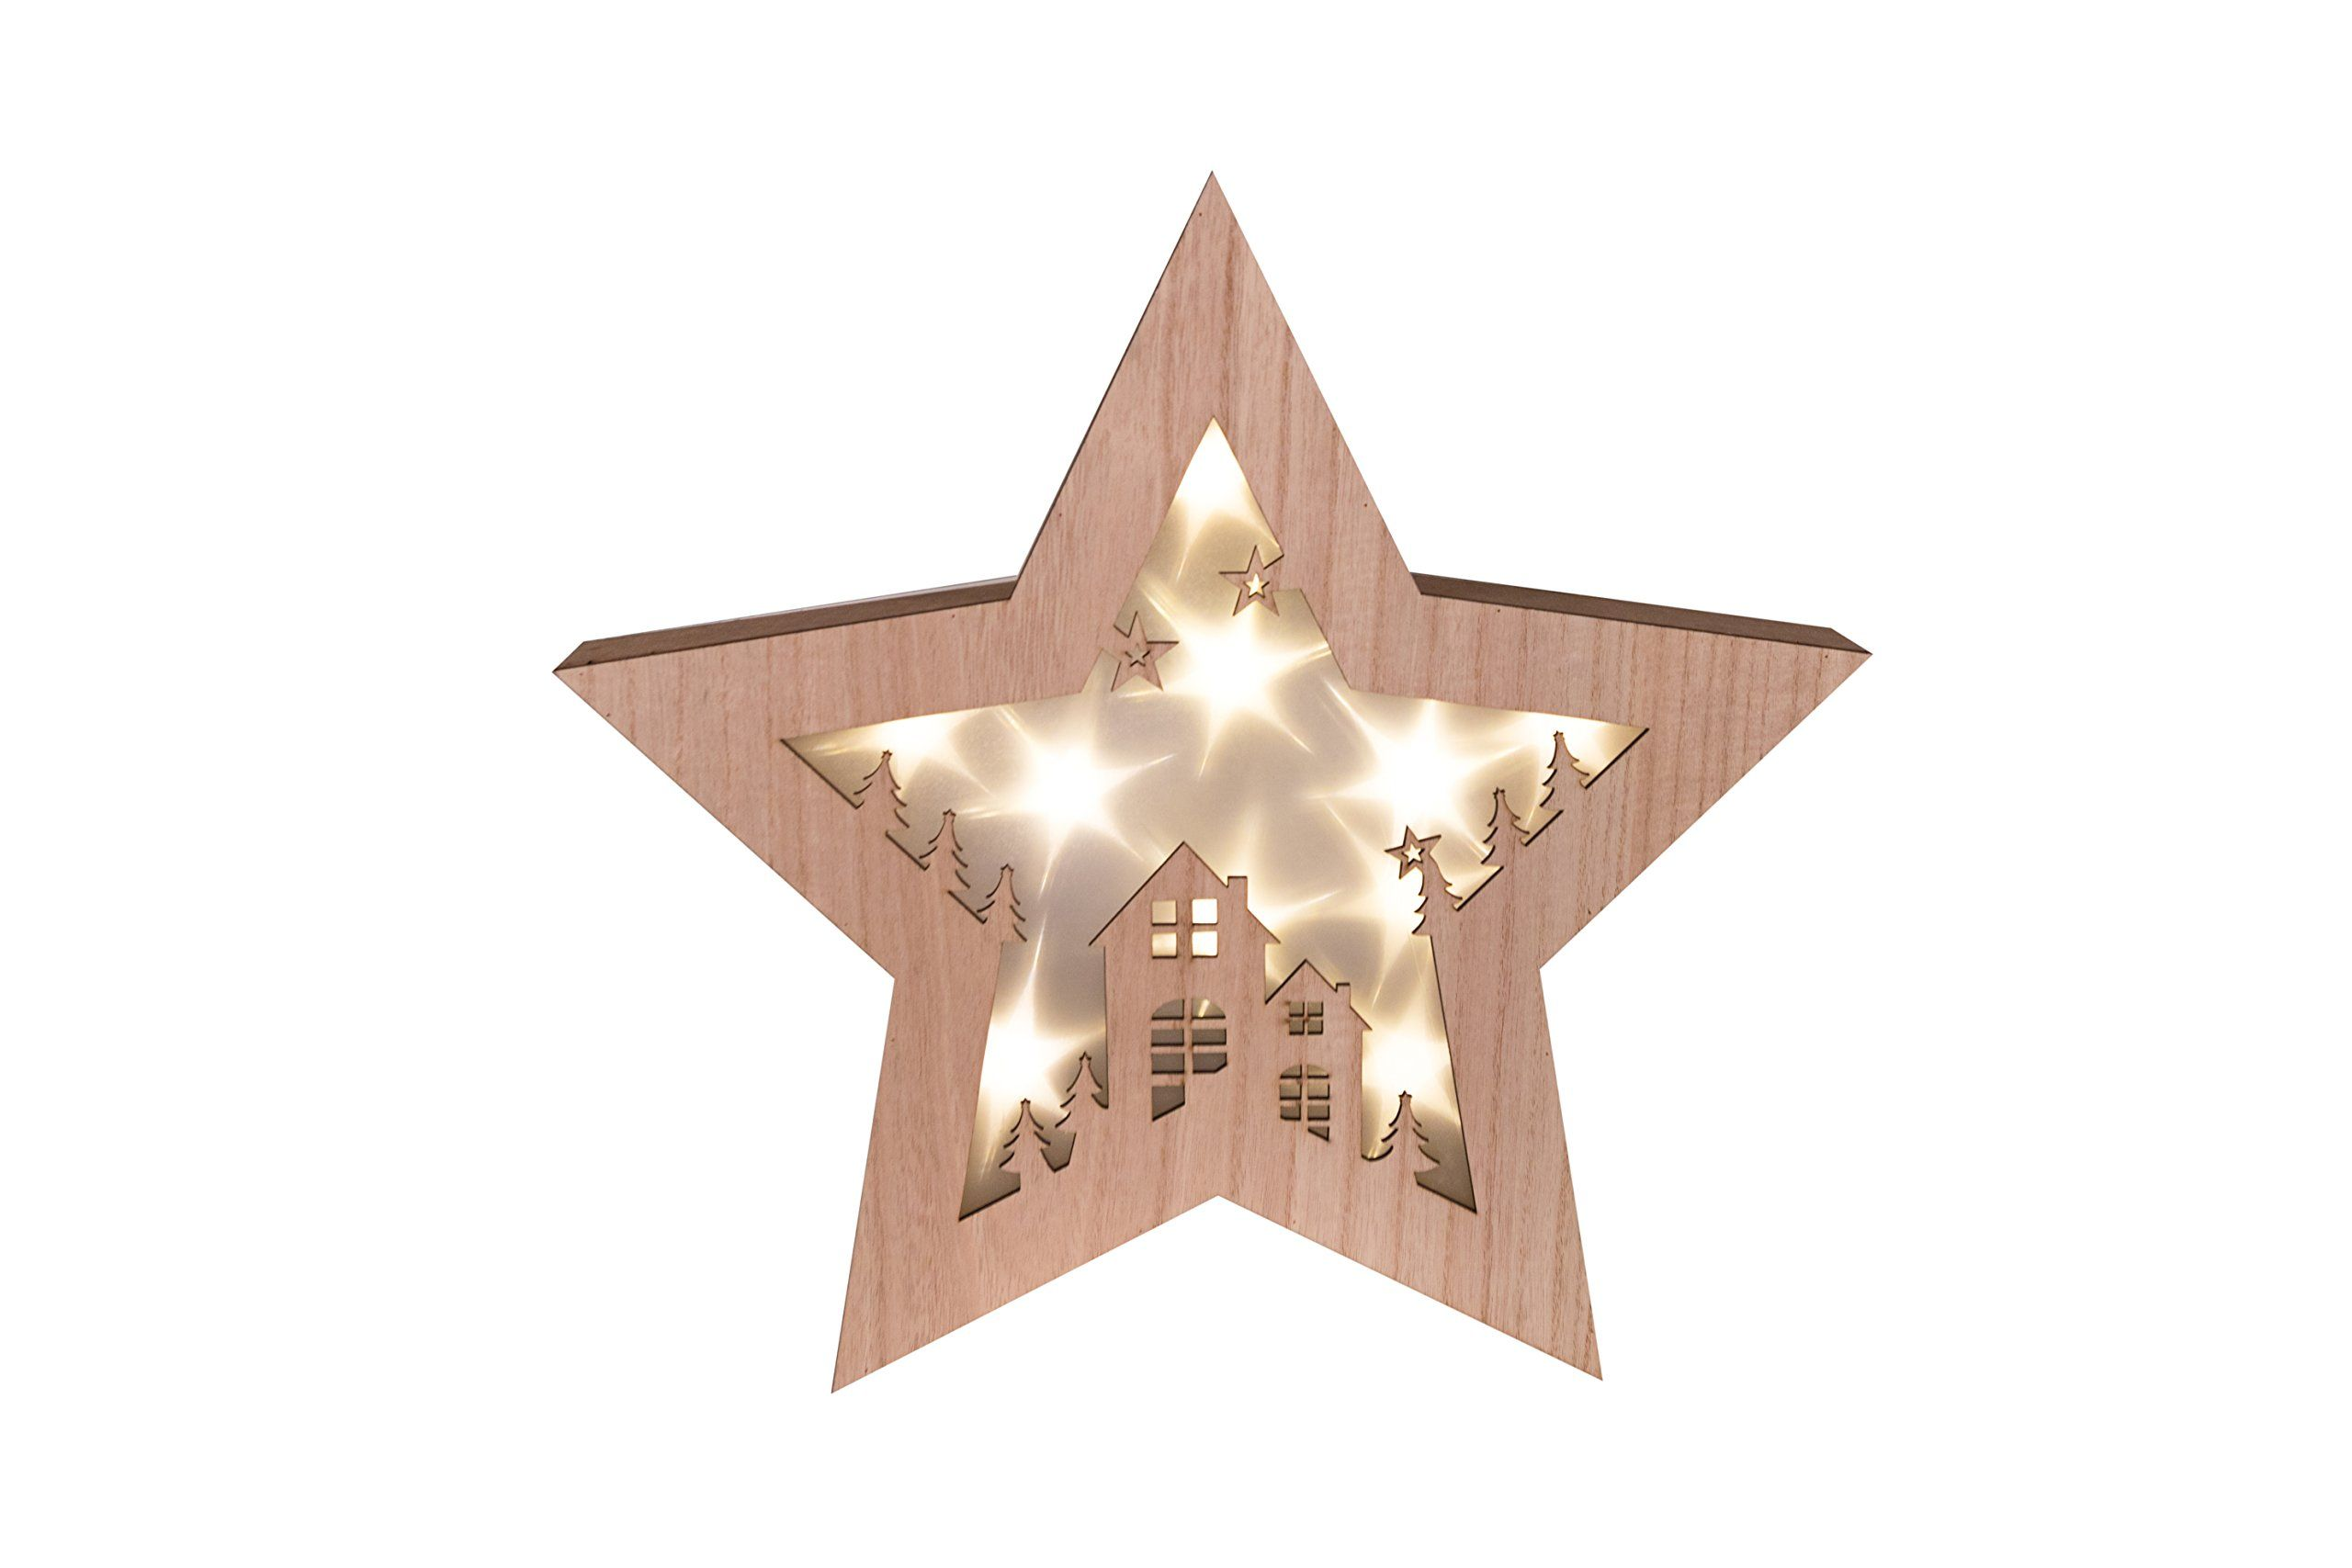 Wooden Star Shadow Box - Starry Night Led Christmas Hanging